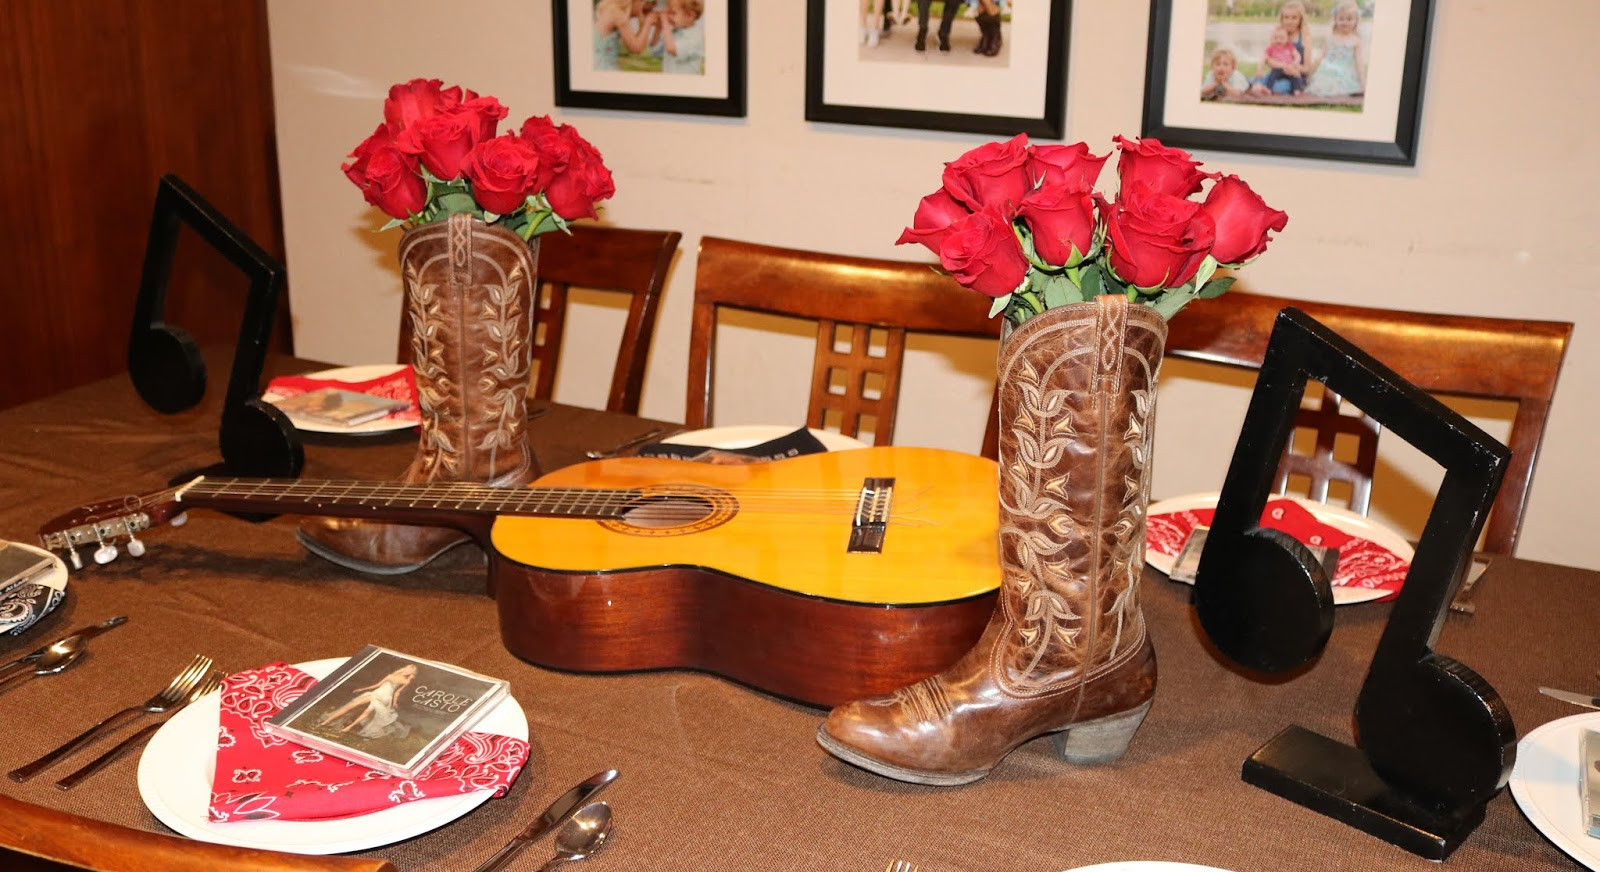 Cowboy Boot Vase Centerpiece Of Invite and Delight Lovin Country Music Inside Decor I Borrowed An Acoustic Guitar From A Friend to Set On My Table I Grabbed My Cowboy Boots and Put A Vase Inside with Red Roses